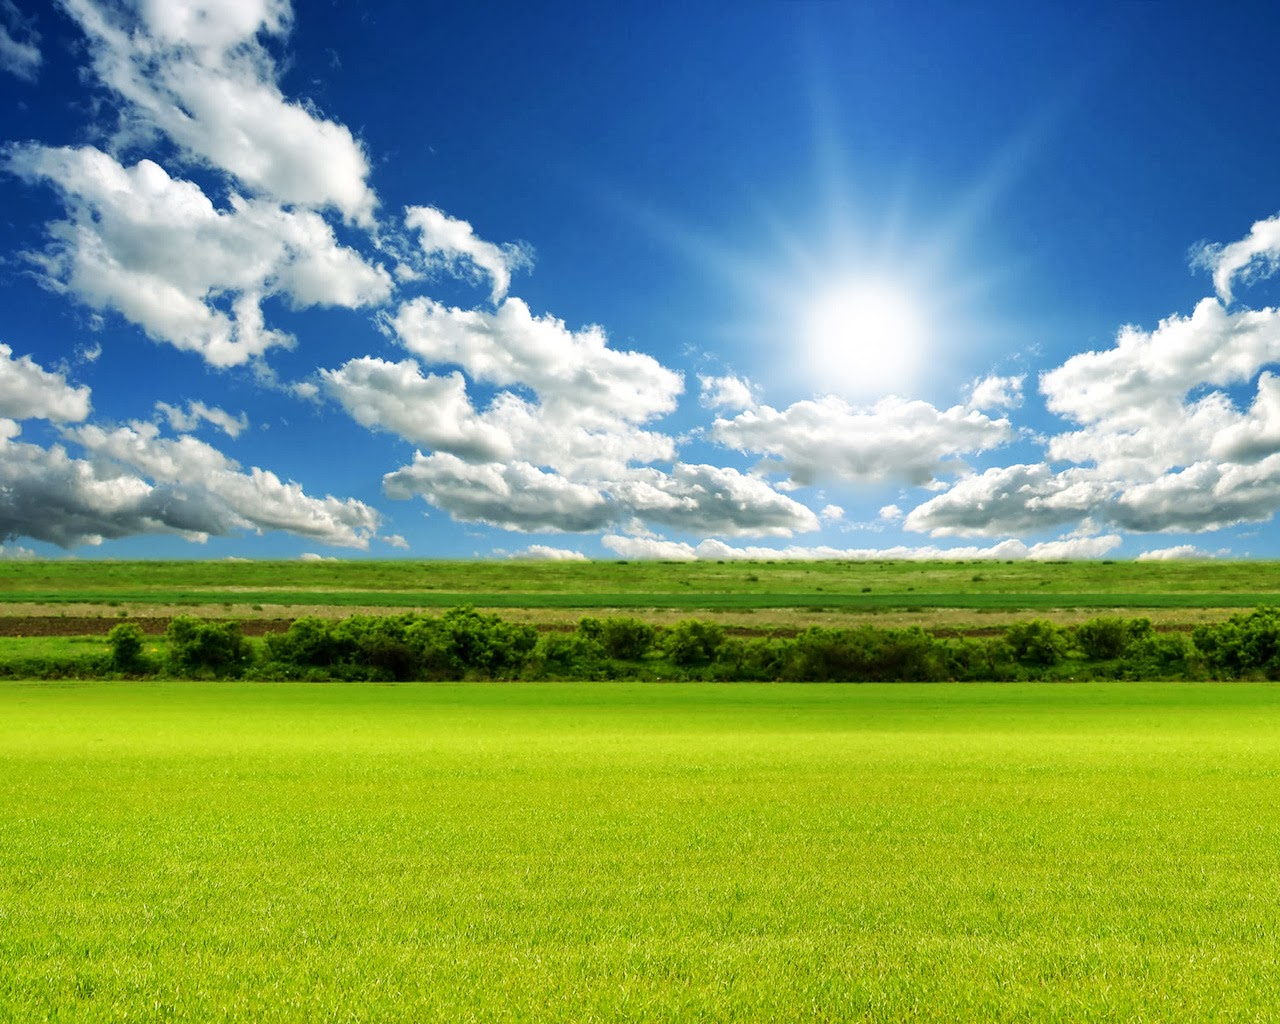 Full HD Nature Wallpapers Download For Laptop PC Desktop 1280x1024